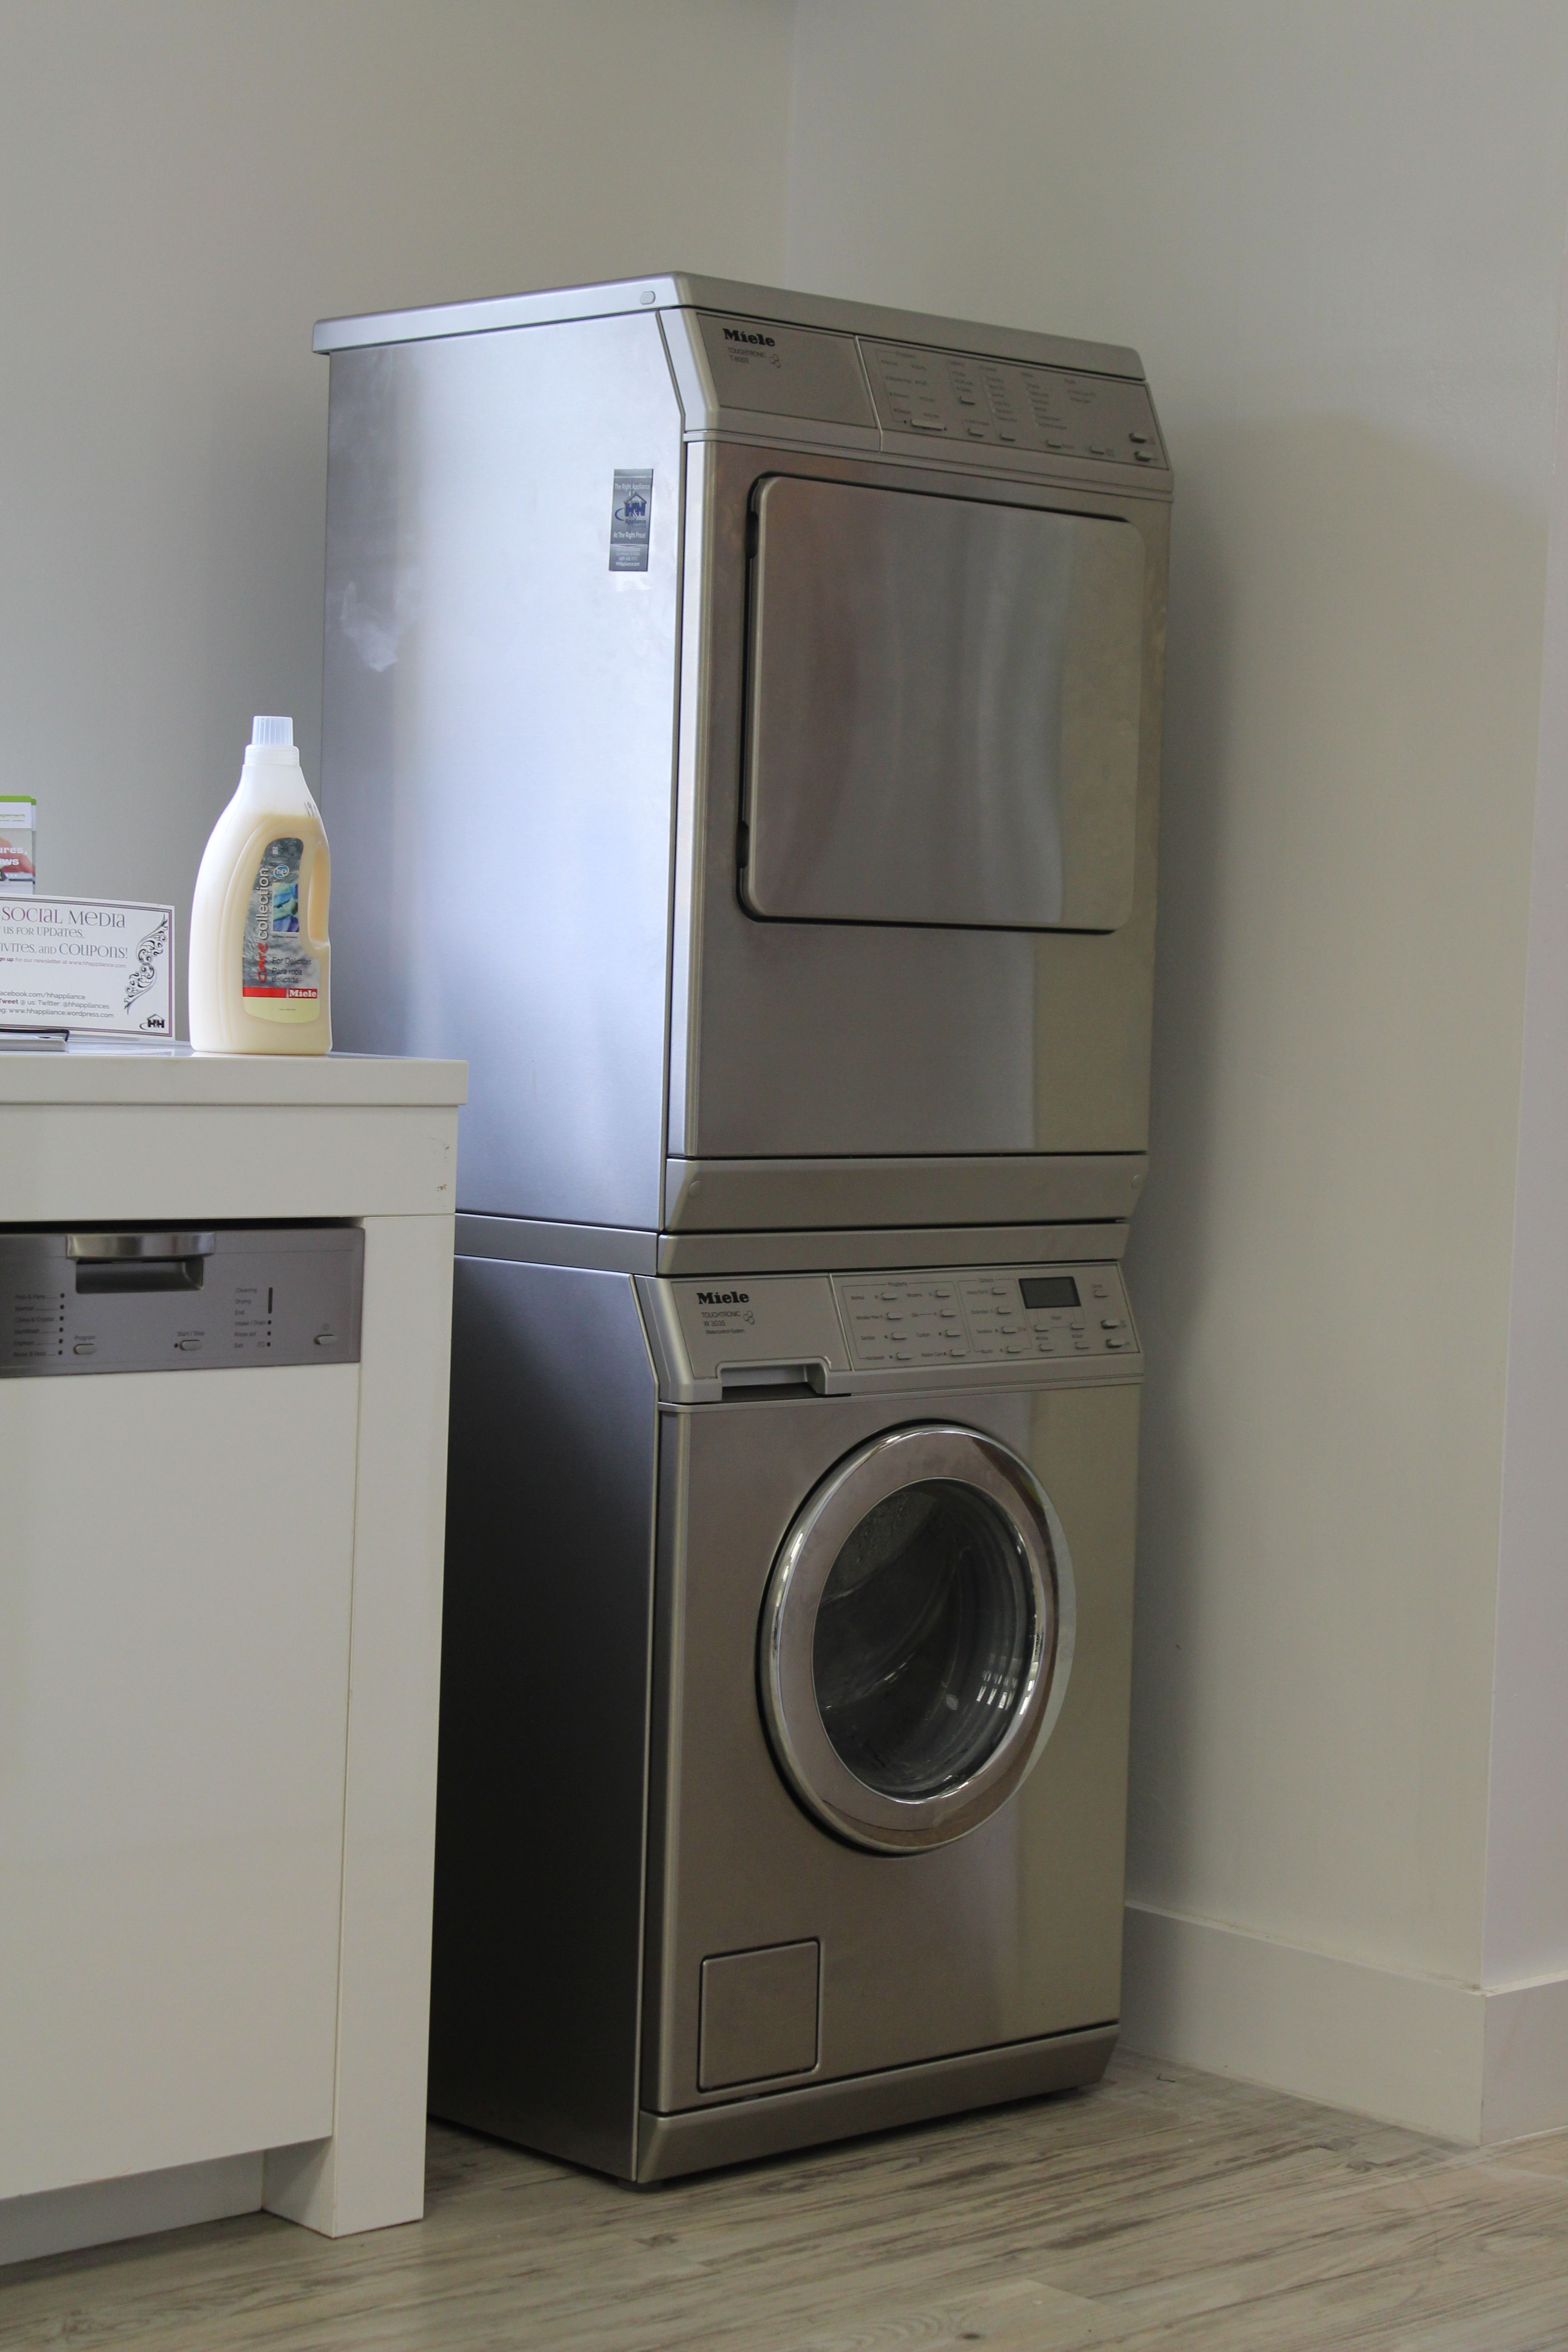 Protected Blog Log In Washer Dryer Kitchen Washer And Dryer Miele Washer Dryer